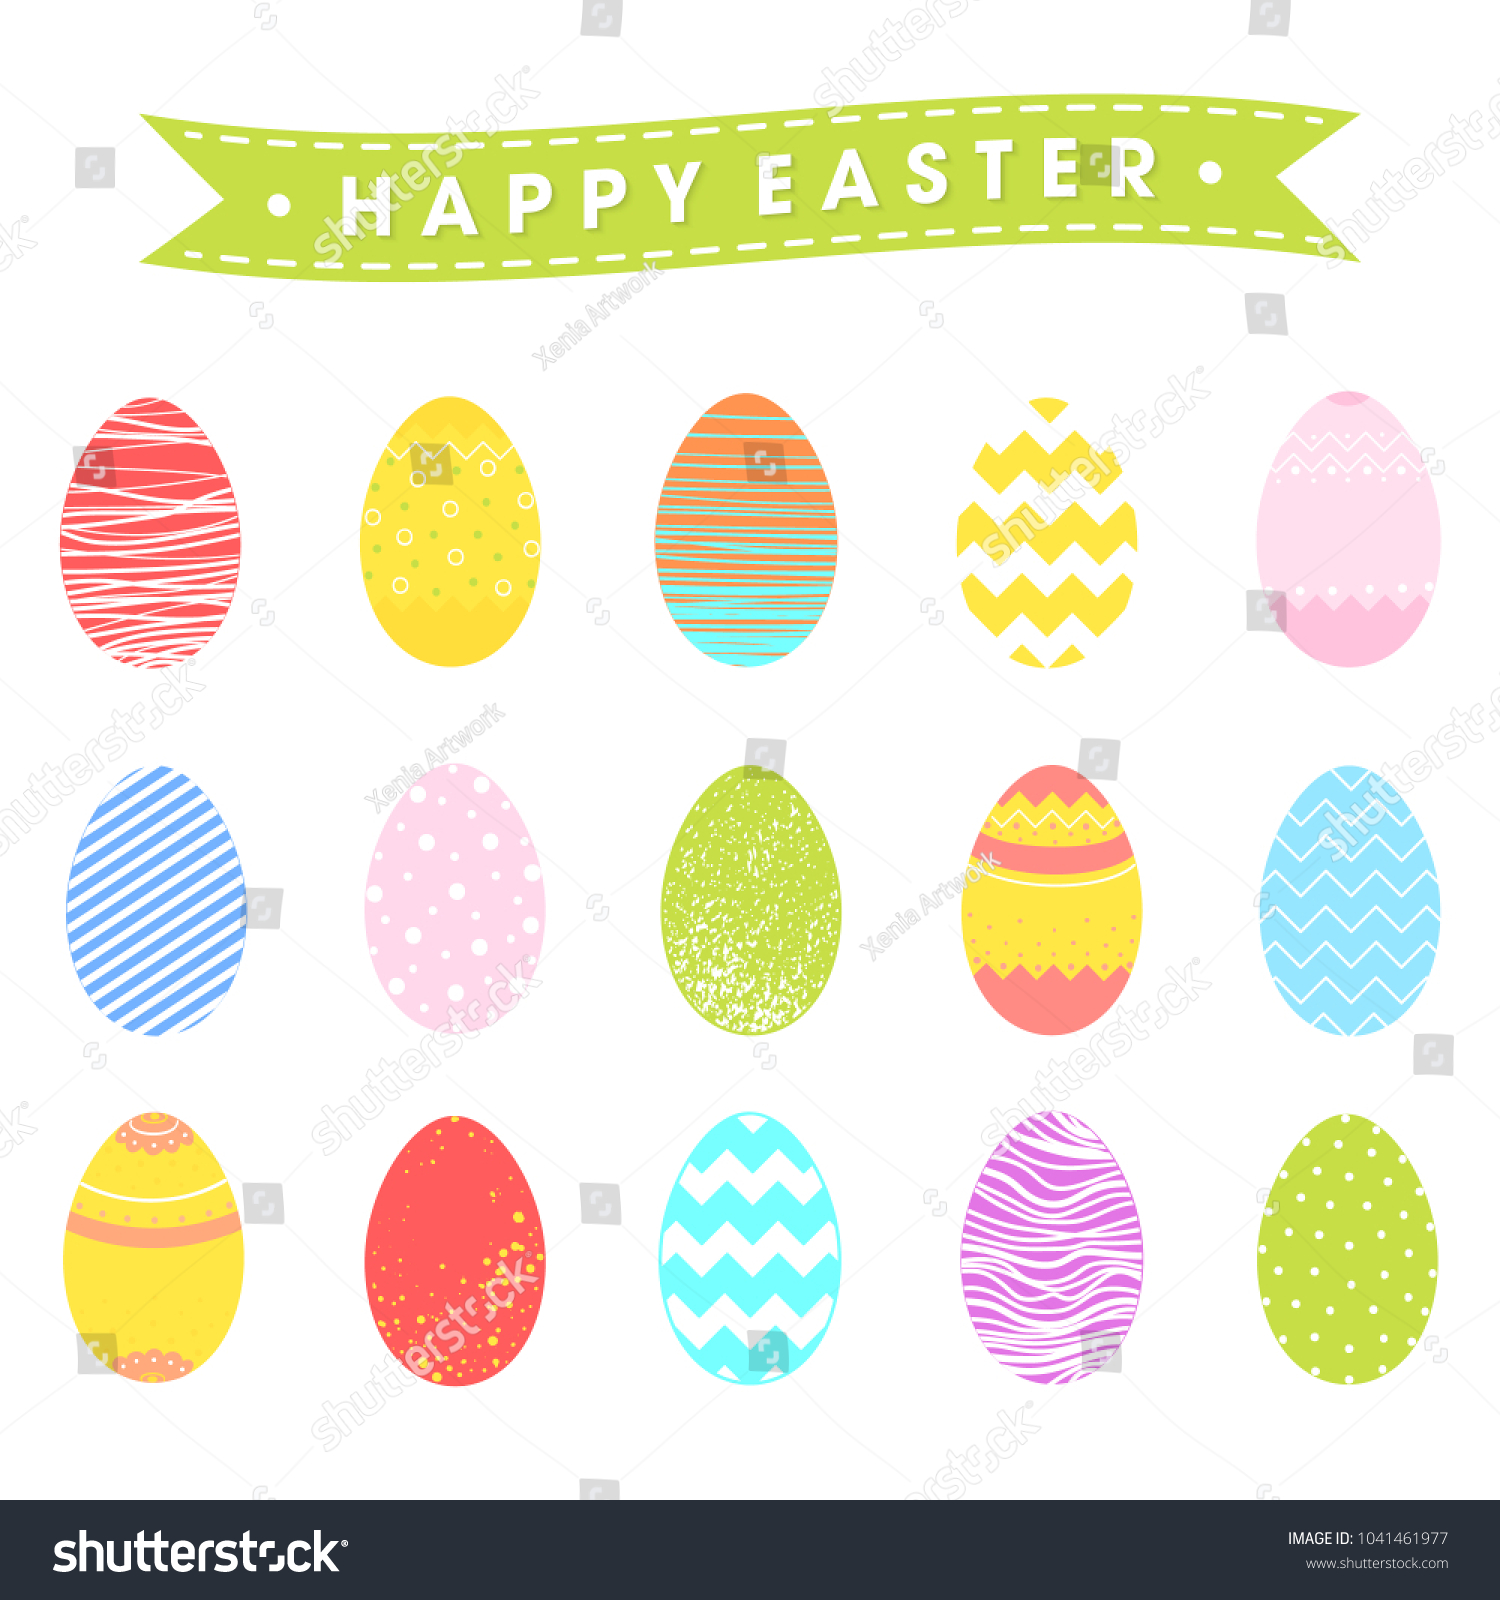 Happy easter colorful eggs seasons greetings stock vector royalty happy easter with colorful eggs seasons greetings card perfect for prints flyersbanners m4hsunfo